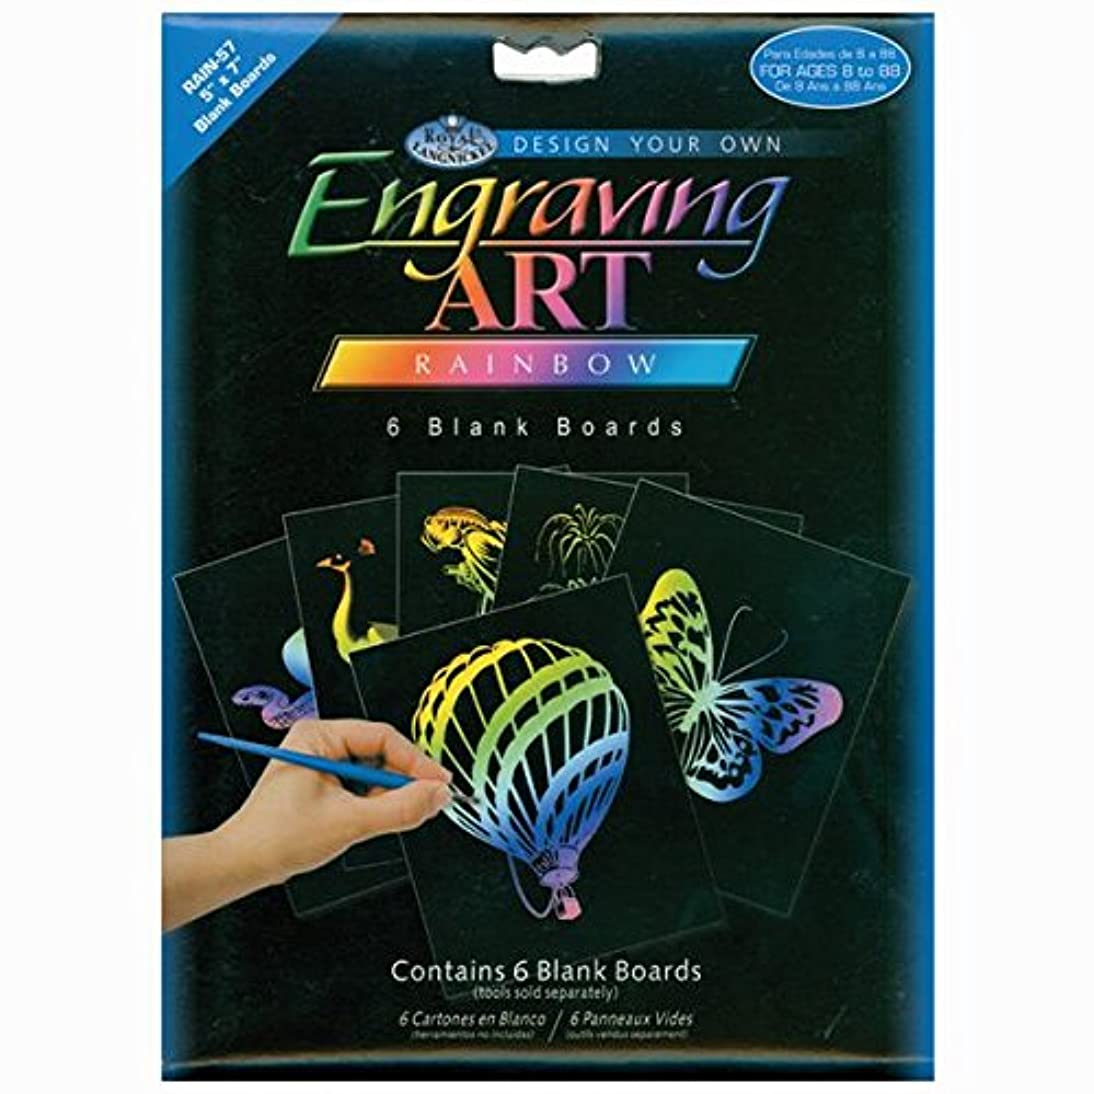 ROYAL BRUSH Foil Engraving Art Blank Boards, 5 by 7-Inch, Rainbow, 6-Pack